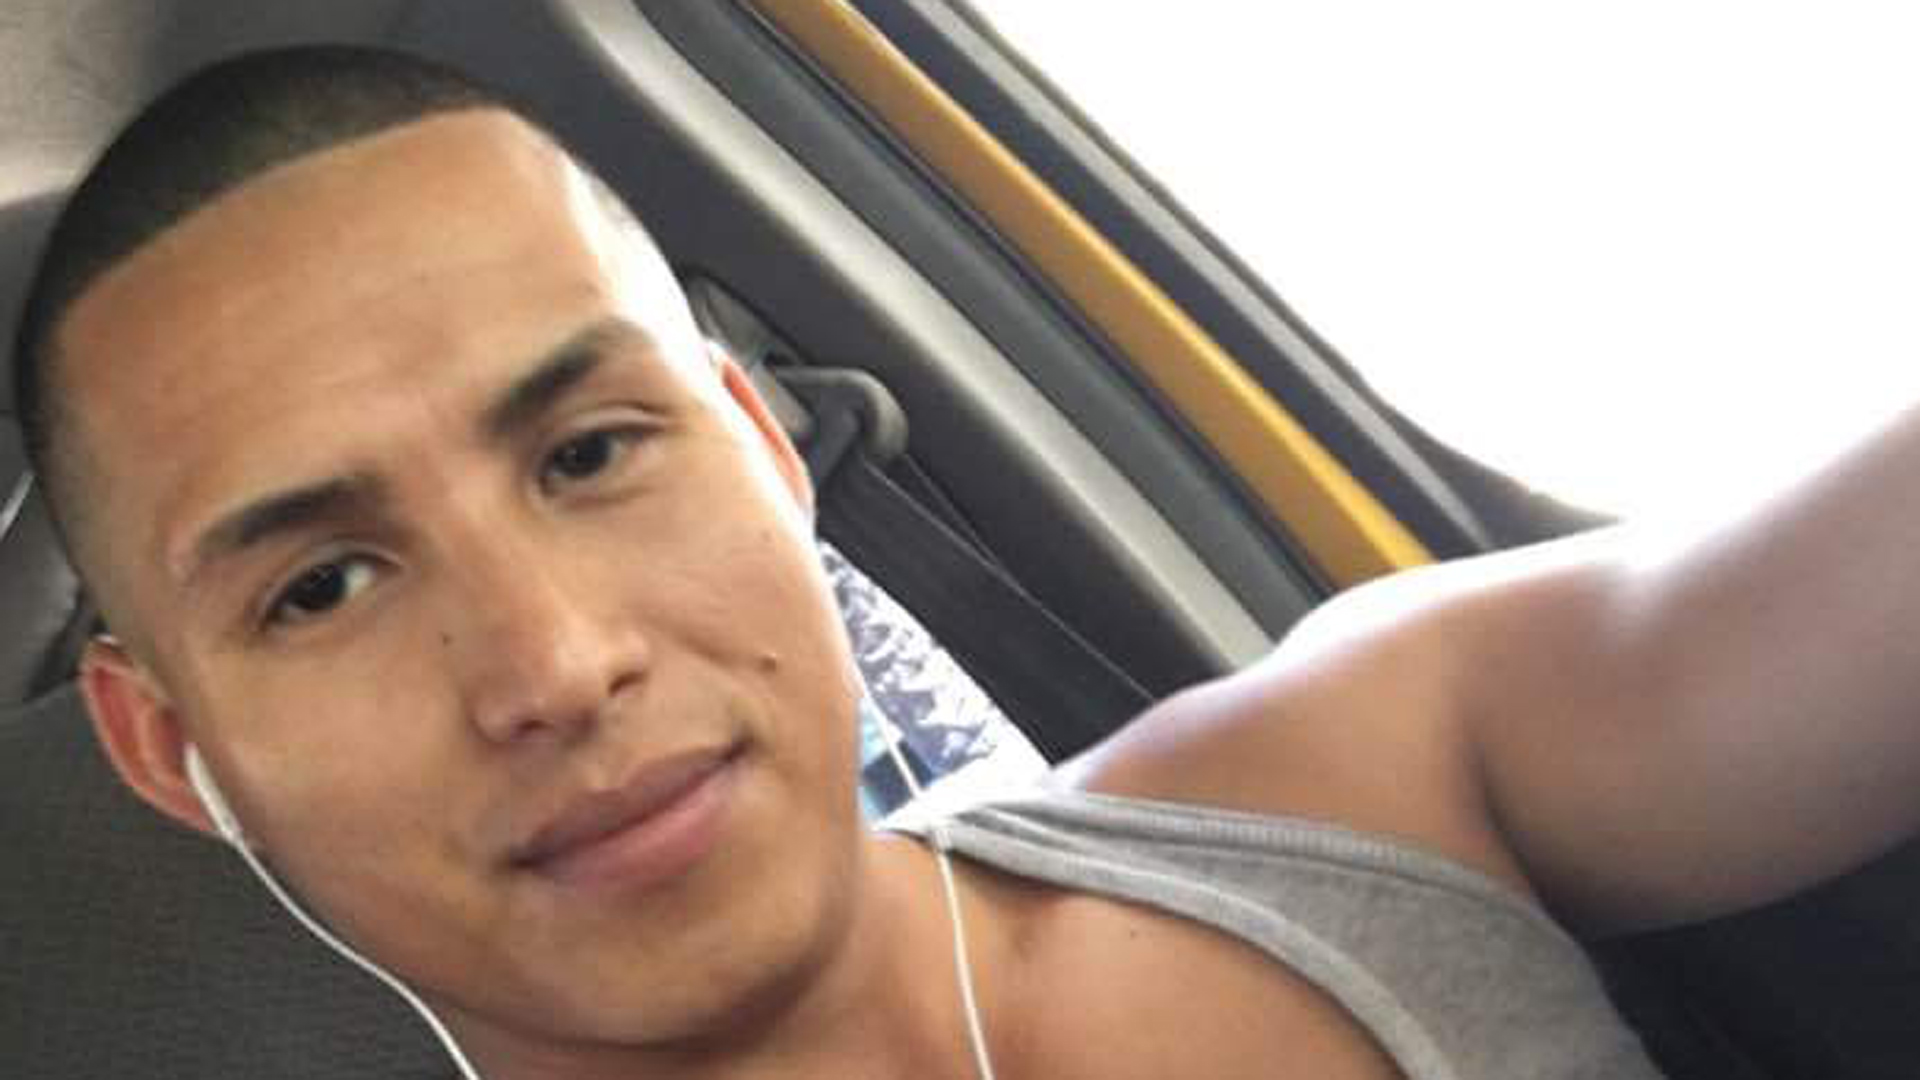 Leonides Rivas, 30, is seen in a photo his cousin provided to KTLA.